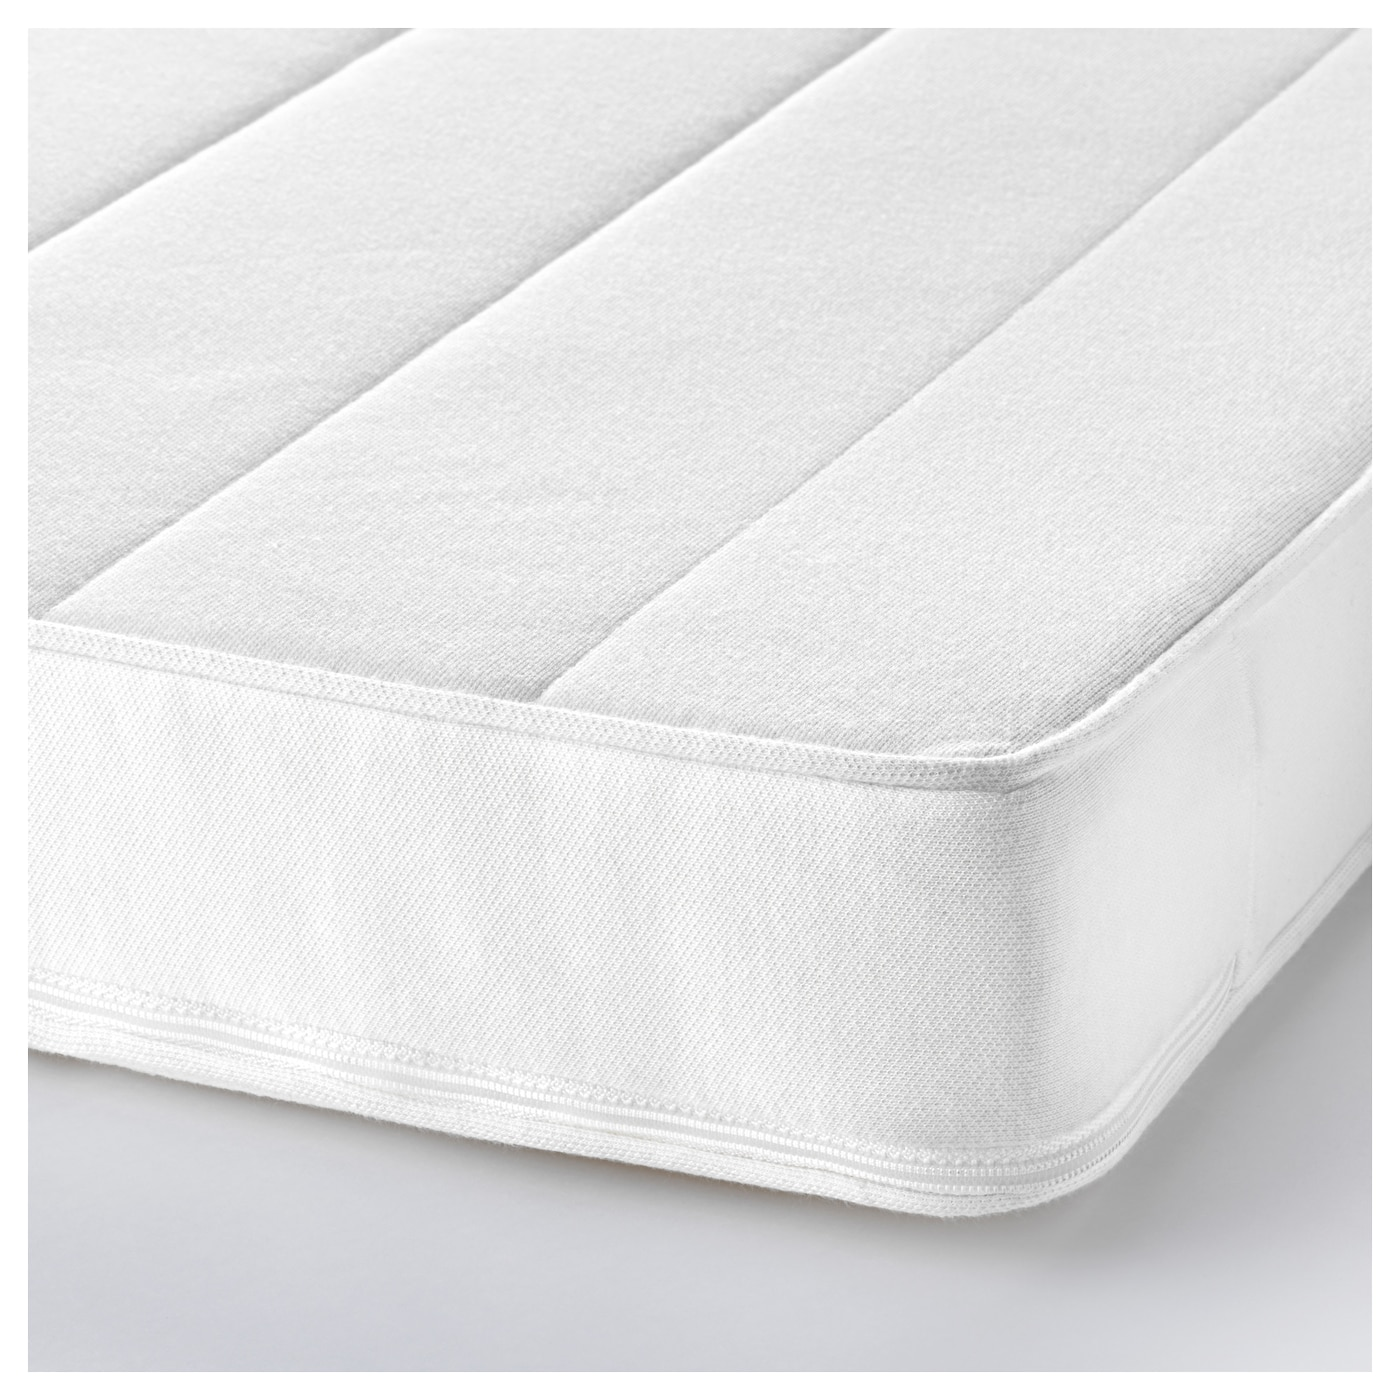 IKEA VYSSA SKÖNT mattress for cot Pressure-relieving cold foam gives good comfort for your baby.